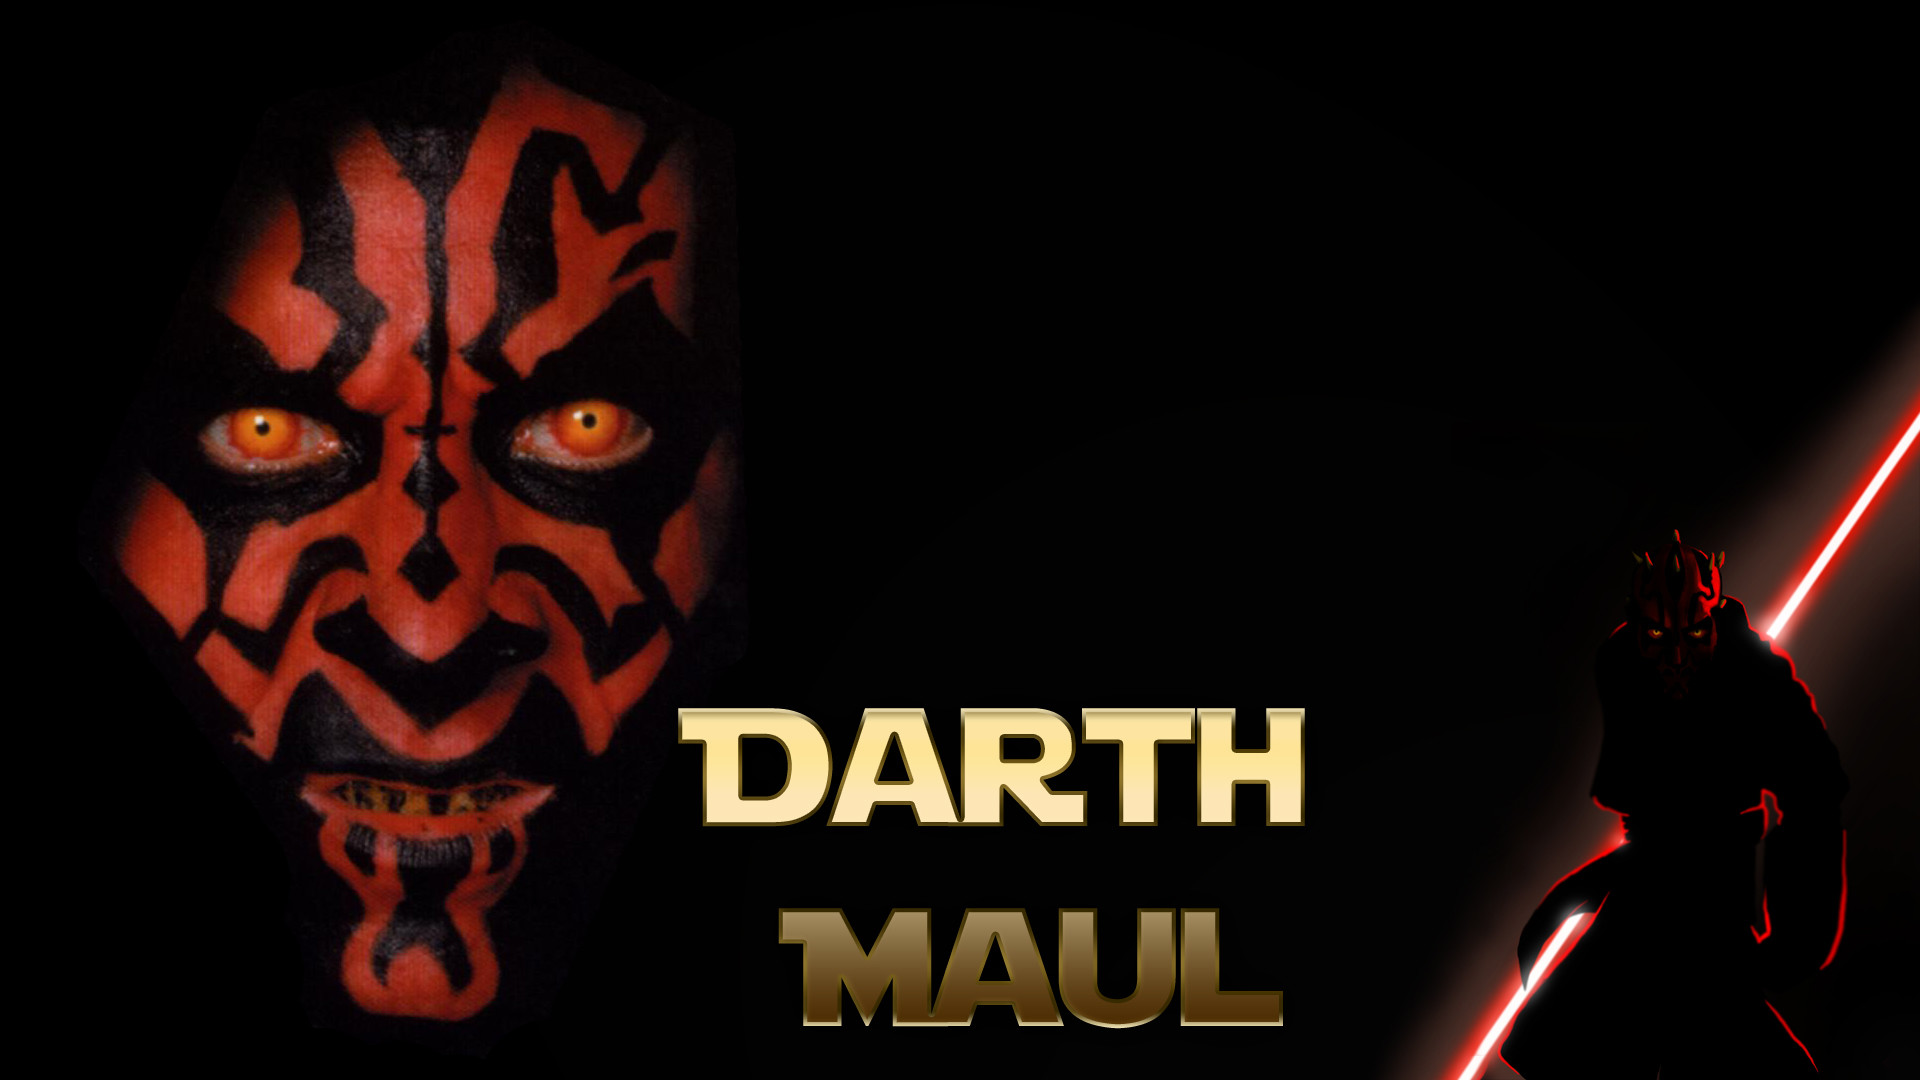 1920x1080 Darth Maul